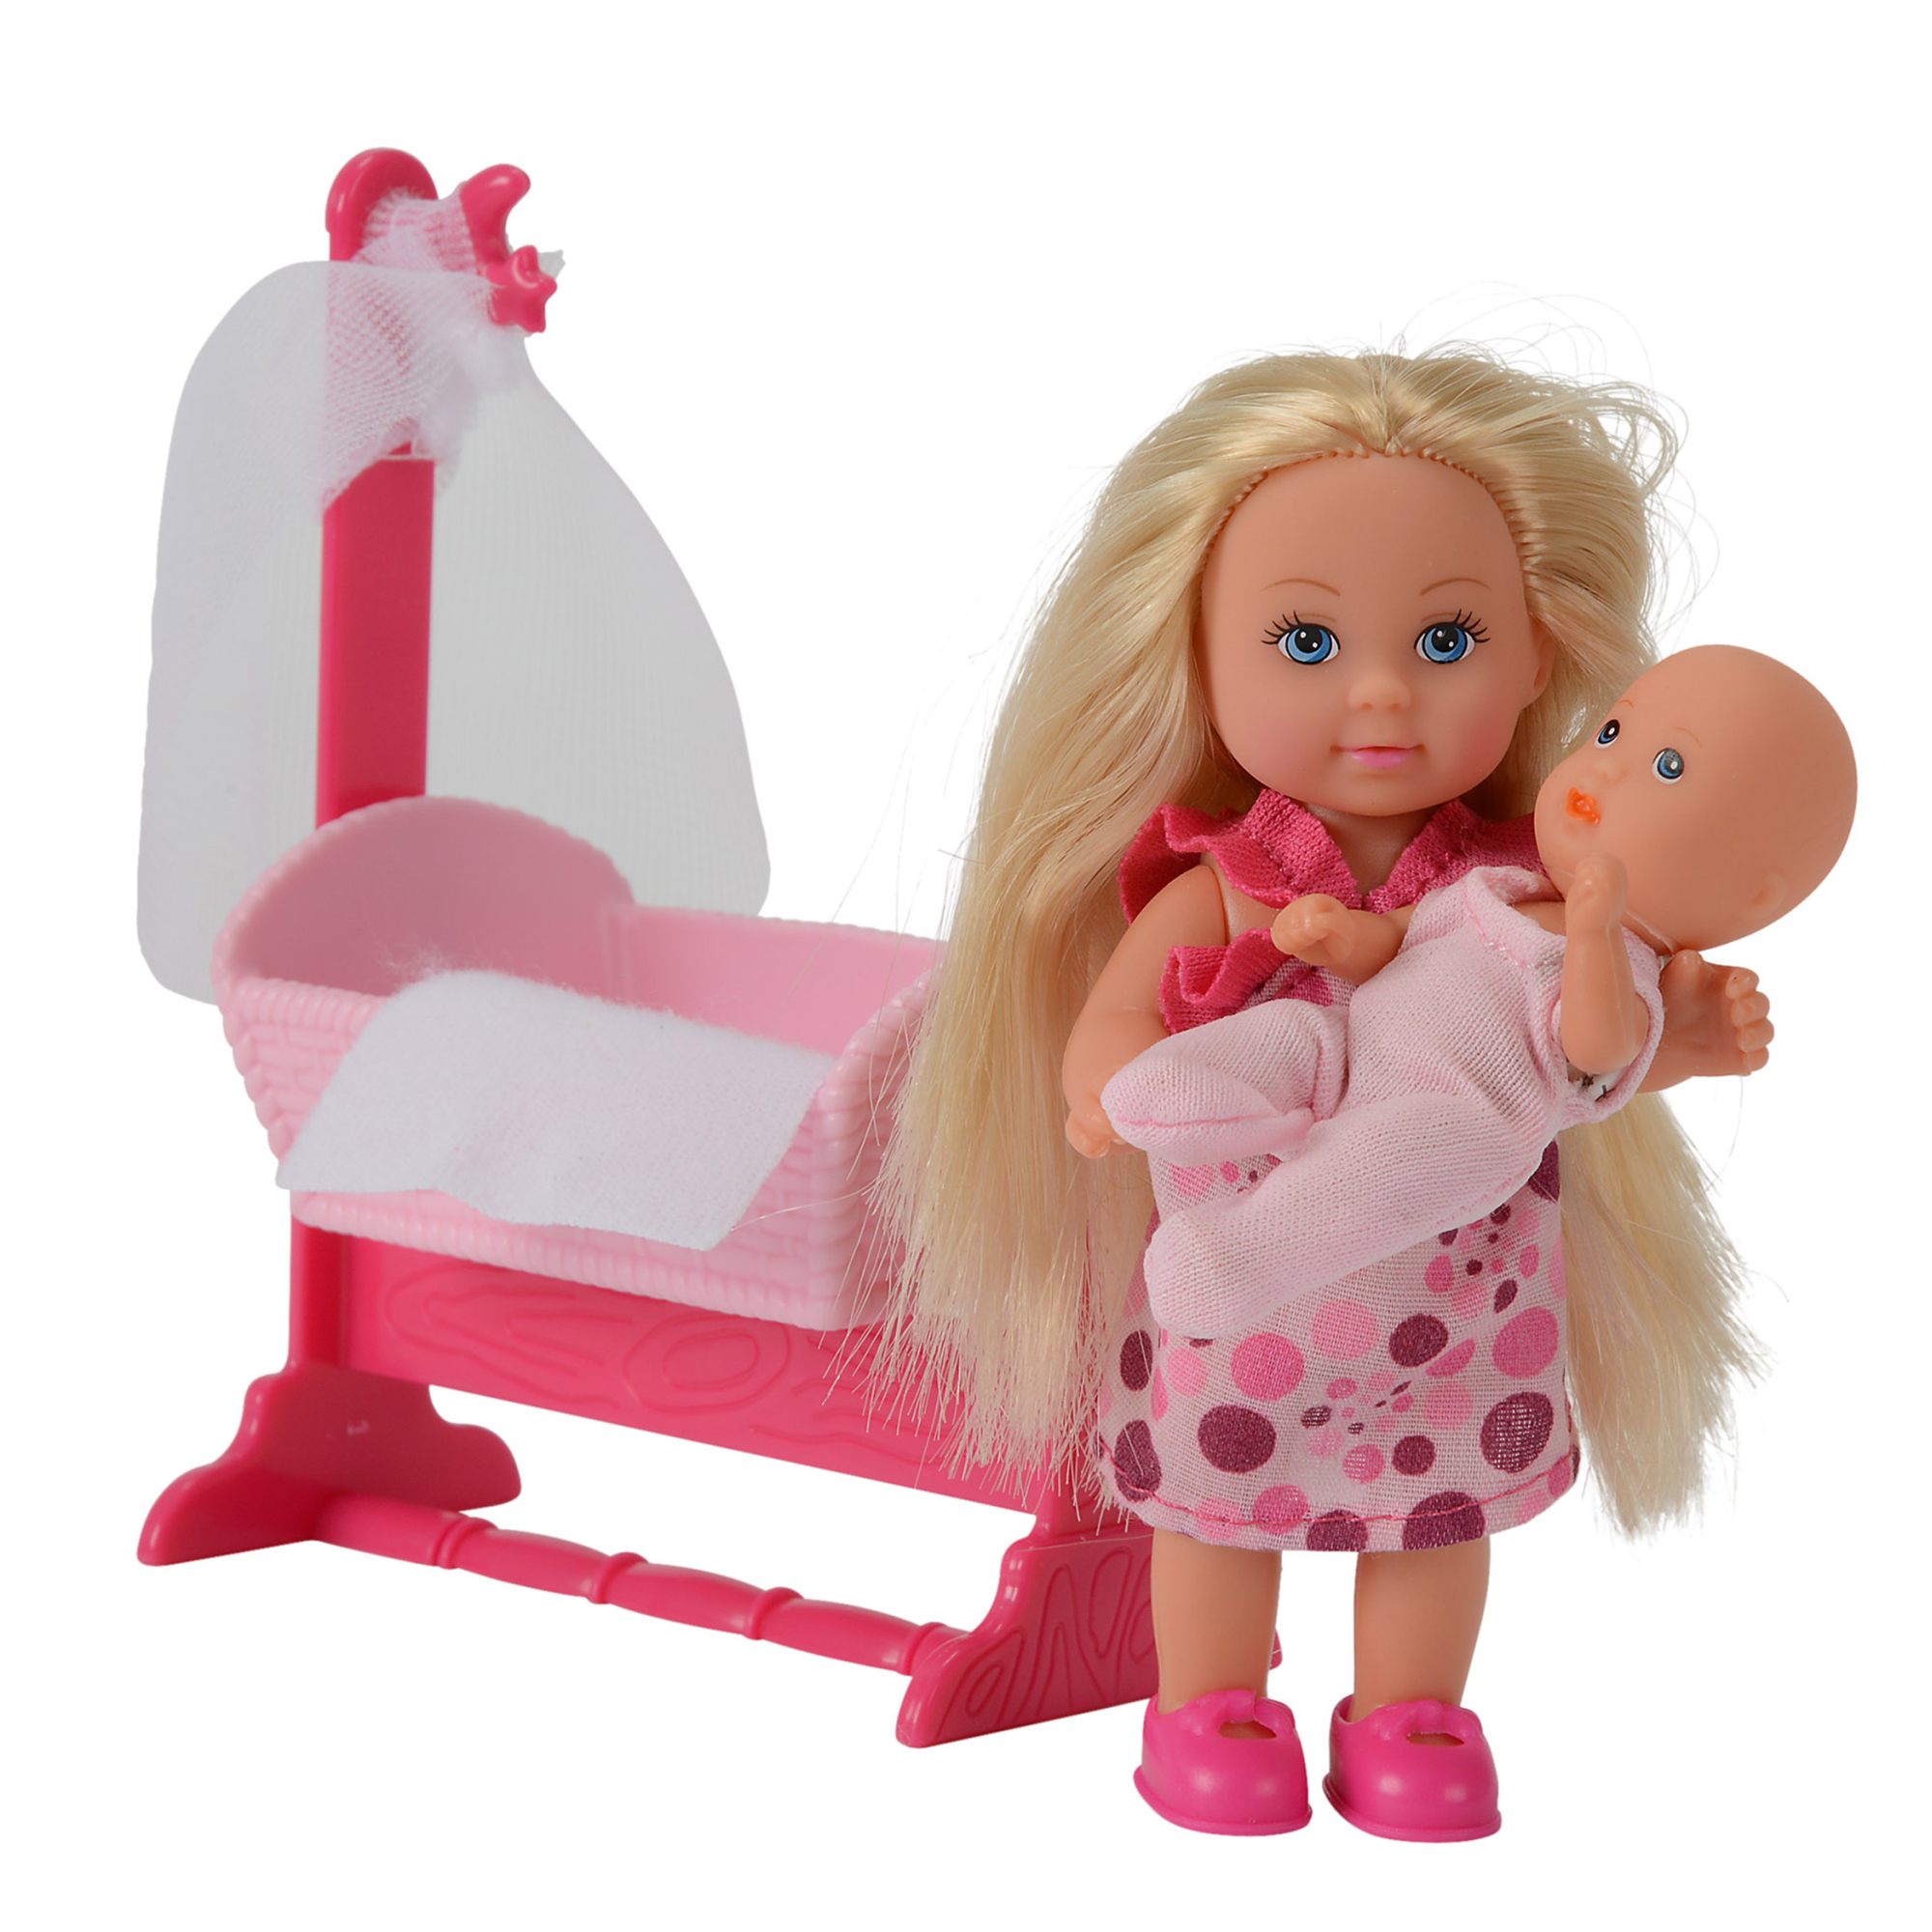 Evi Love Doll & Cradle Playset